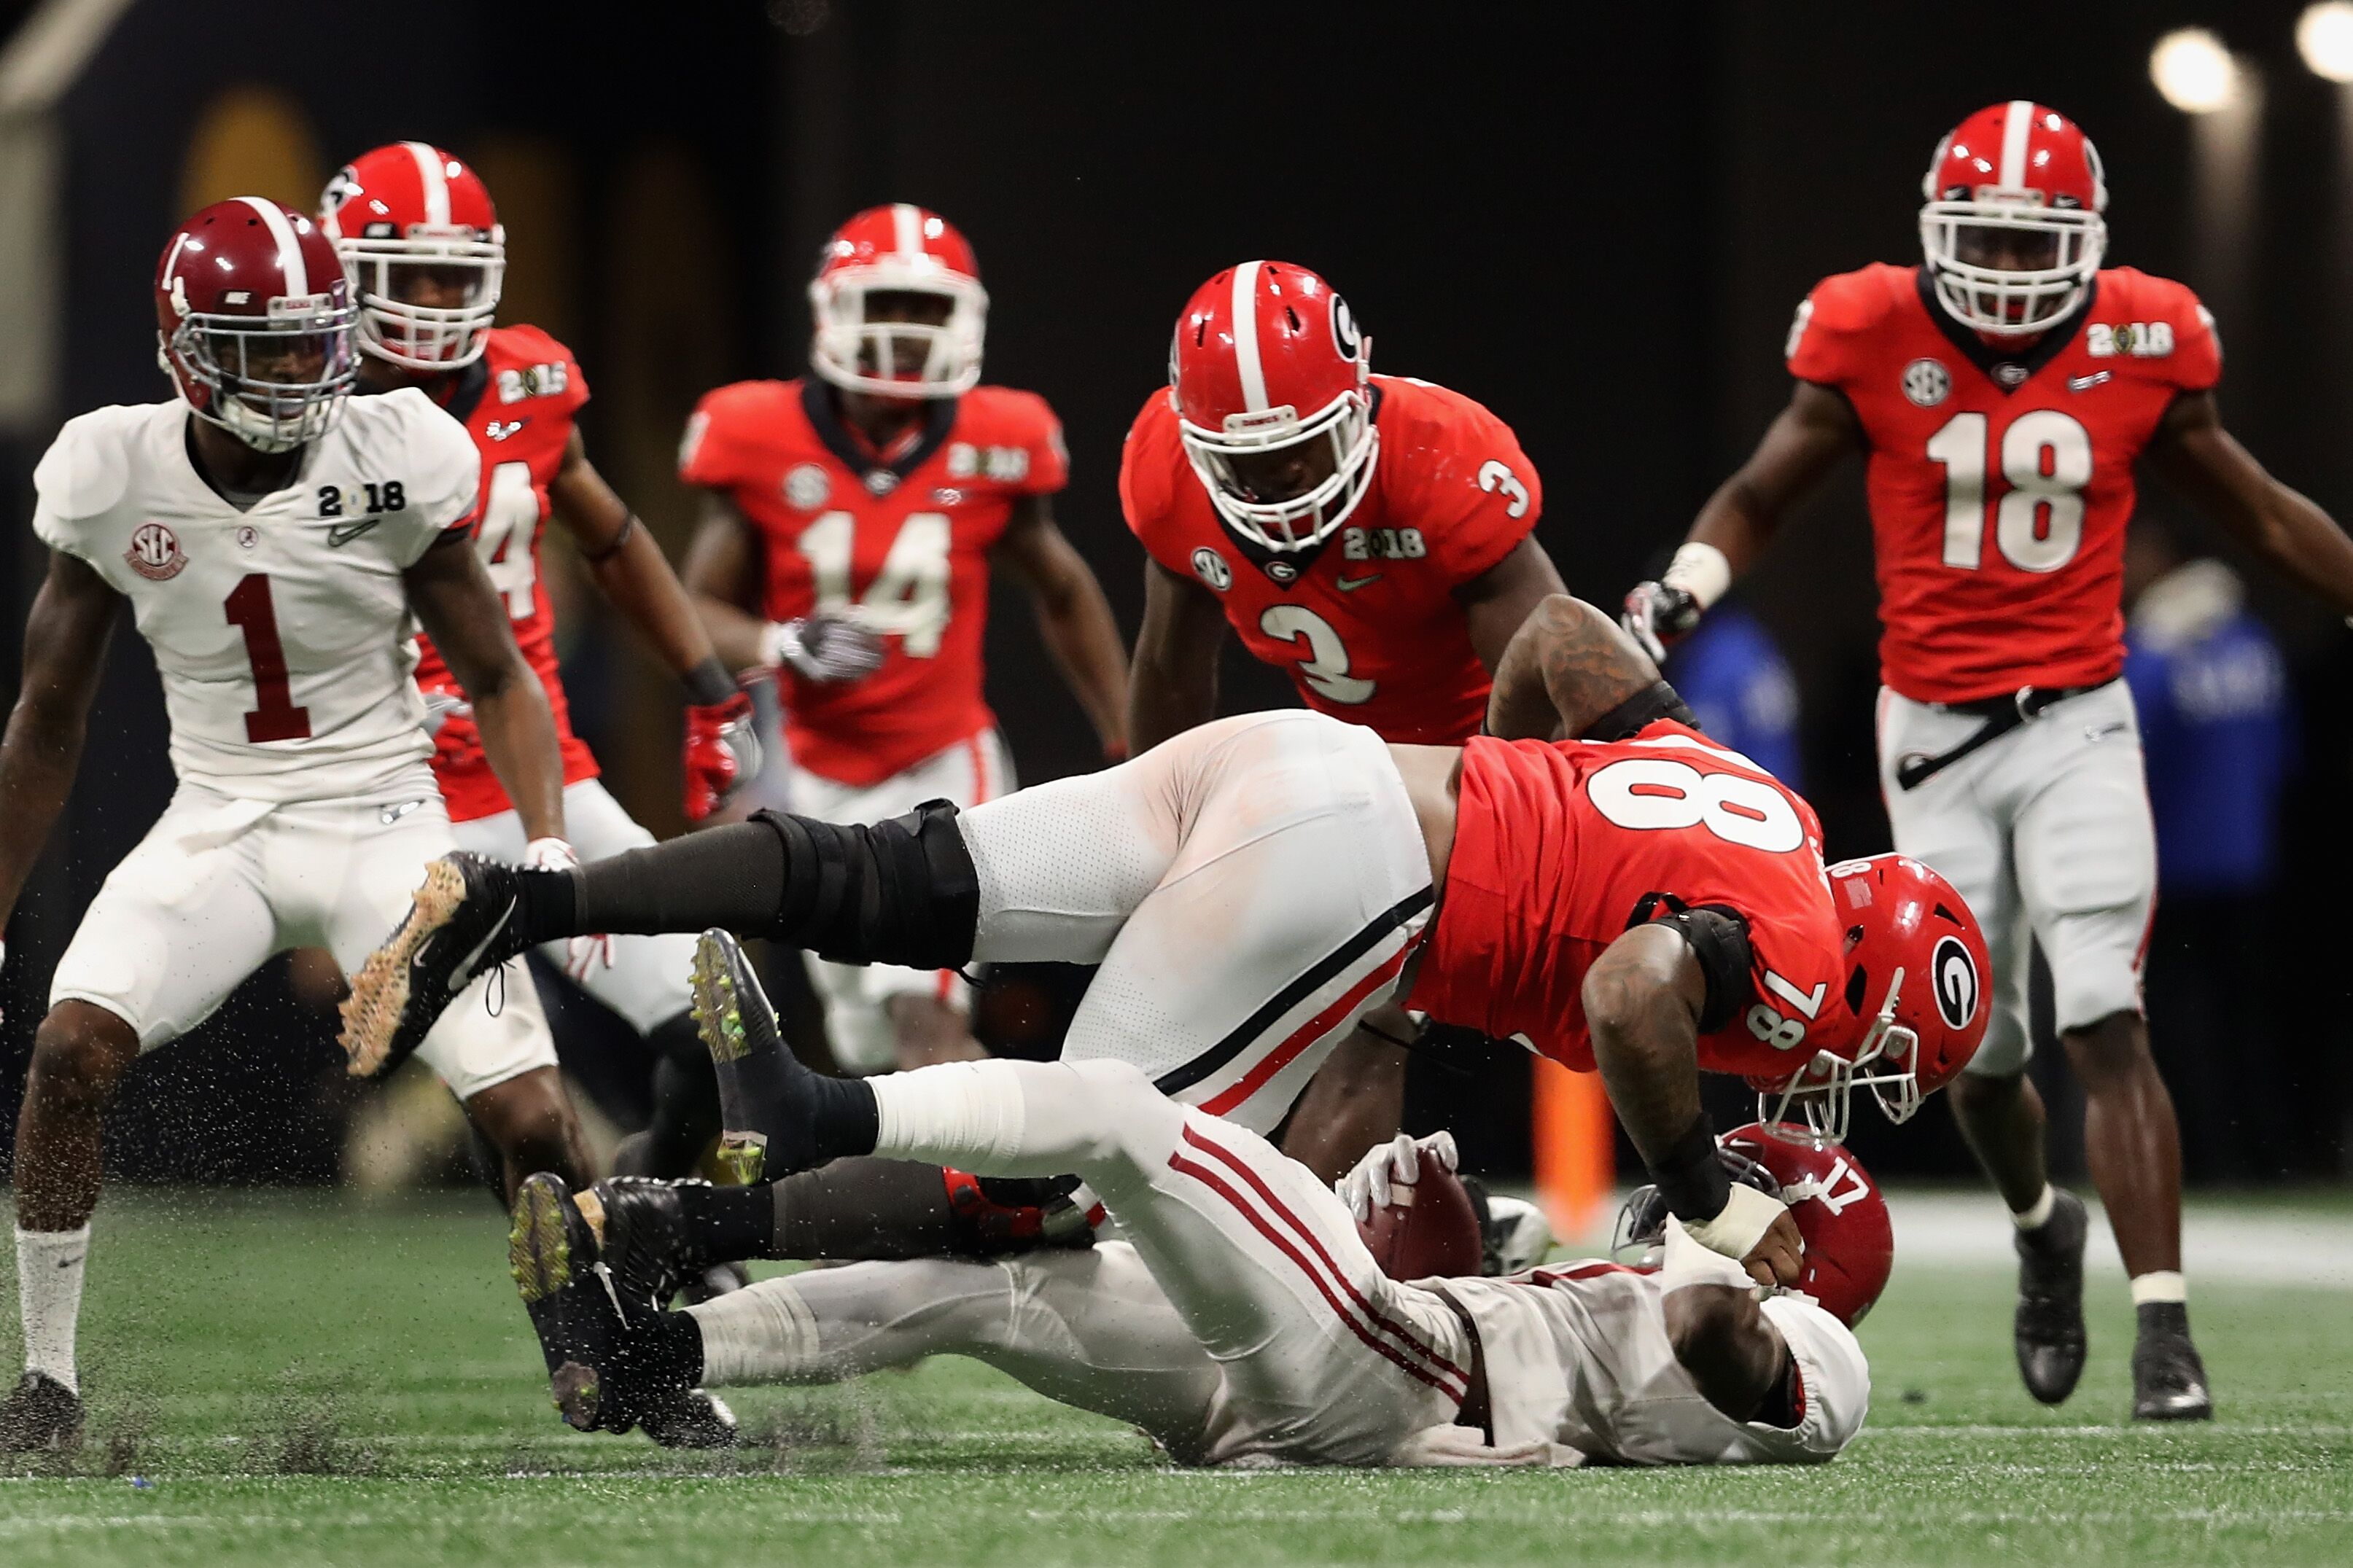 904379336-cfp-national-championship-presented-by-at.jpg